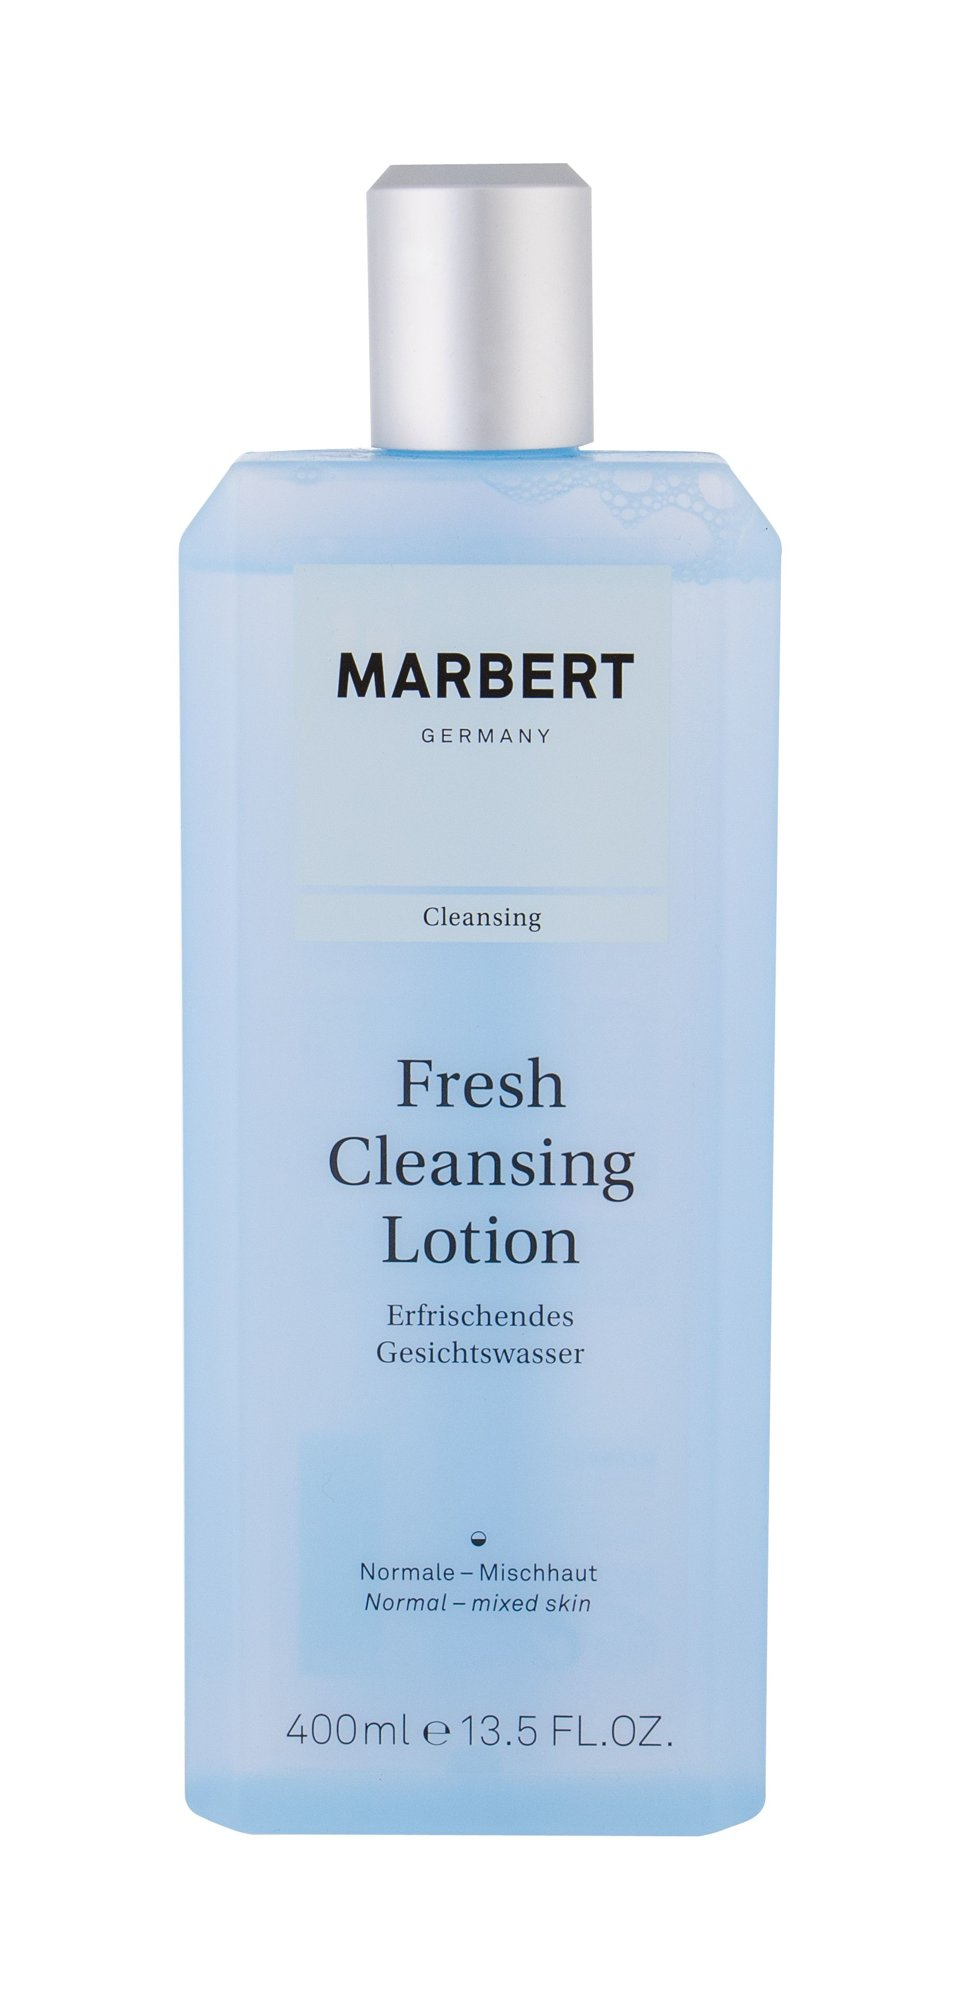 Marbert Cleansing Cleansing Water 400ml  Fresh Cleansing Lotion